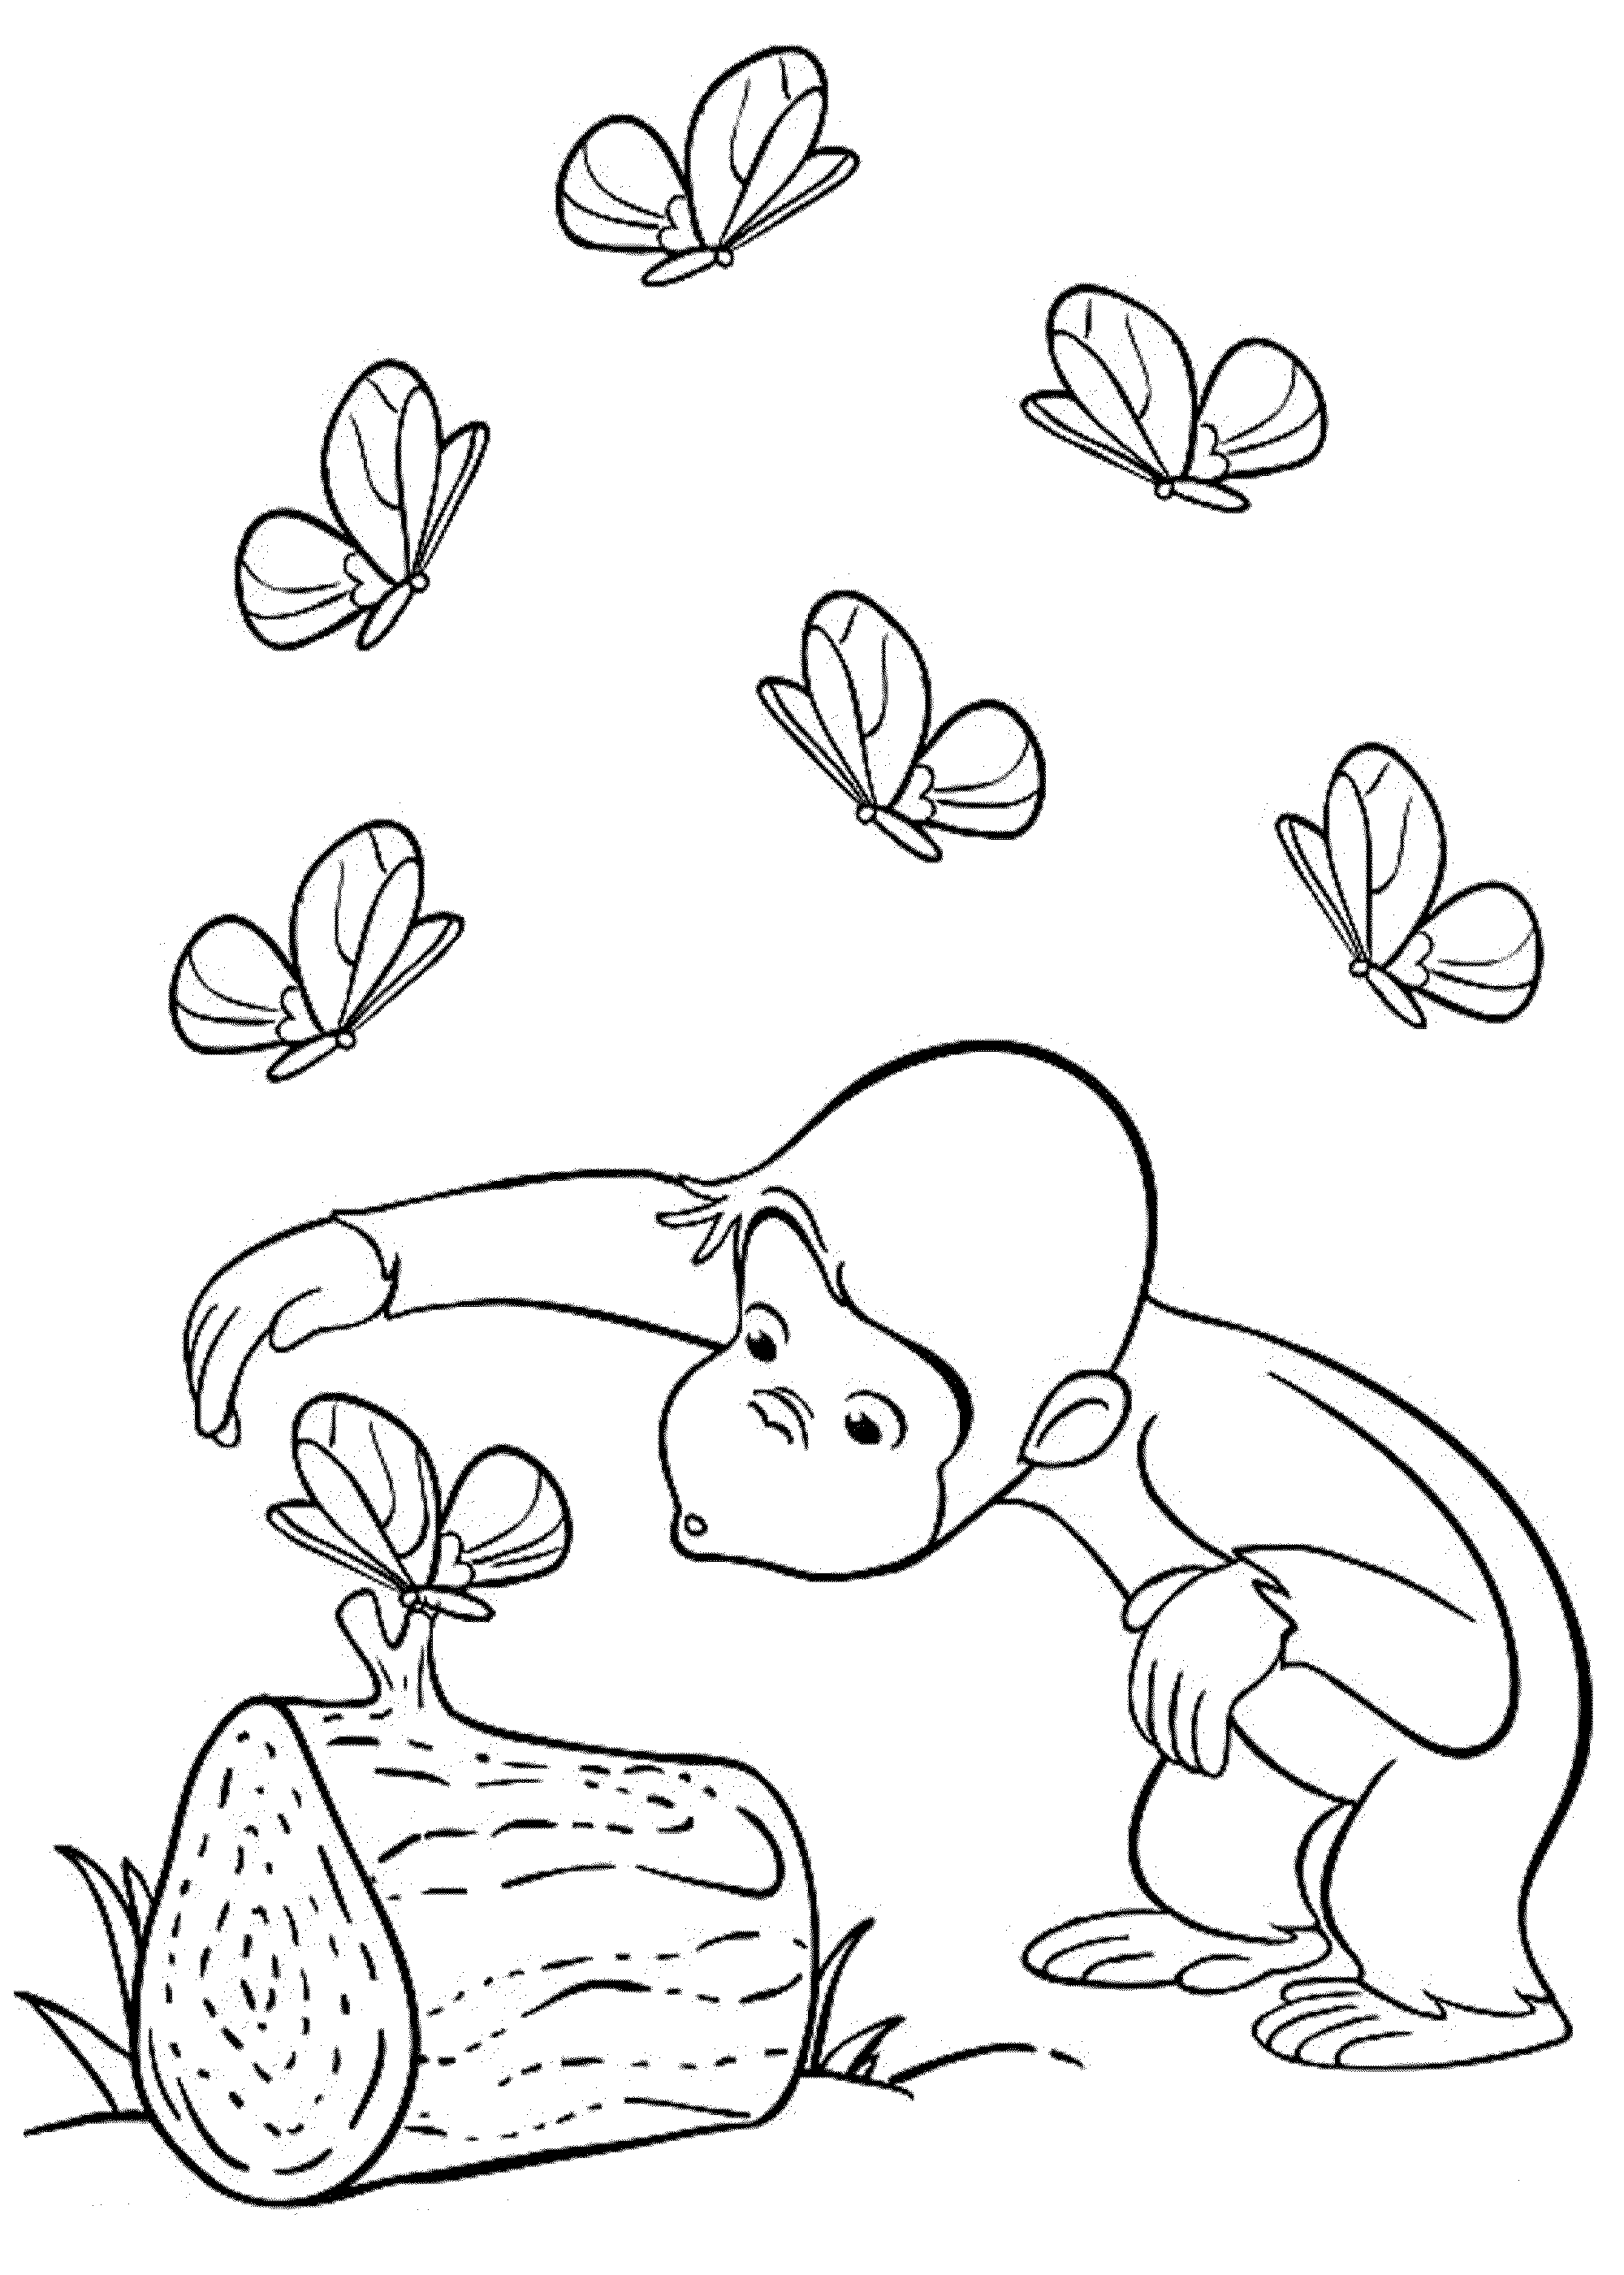 Curious Gee Coloring Pages to